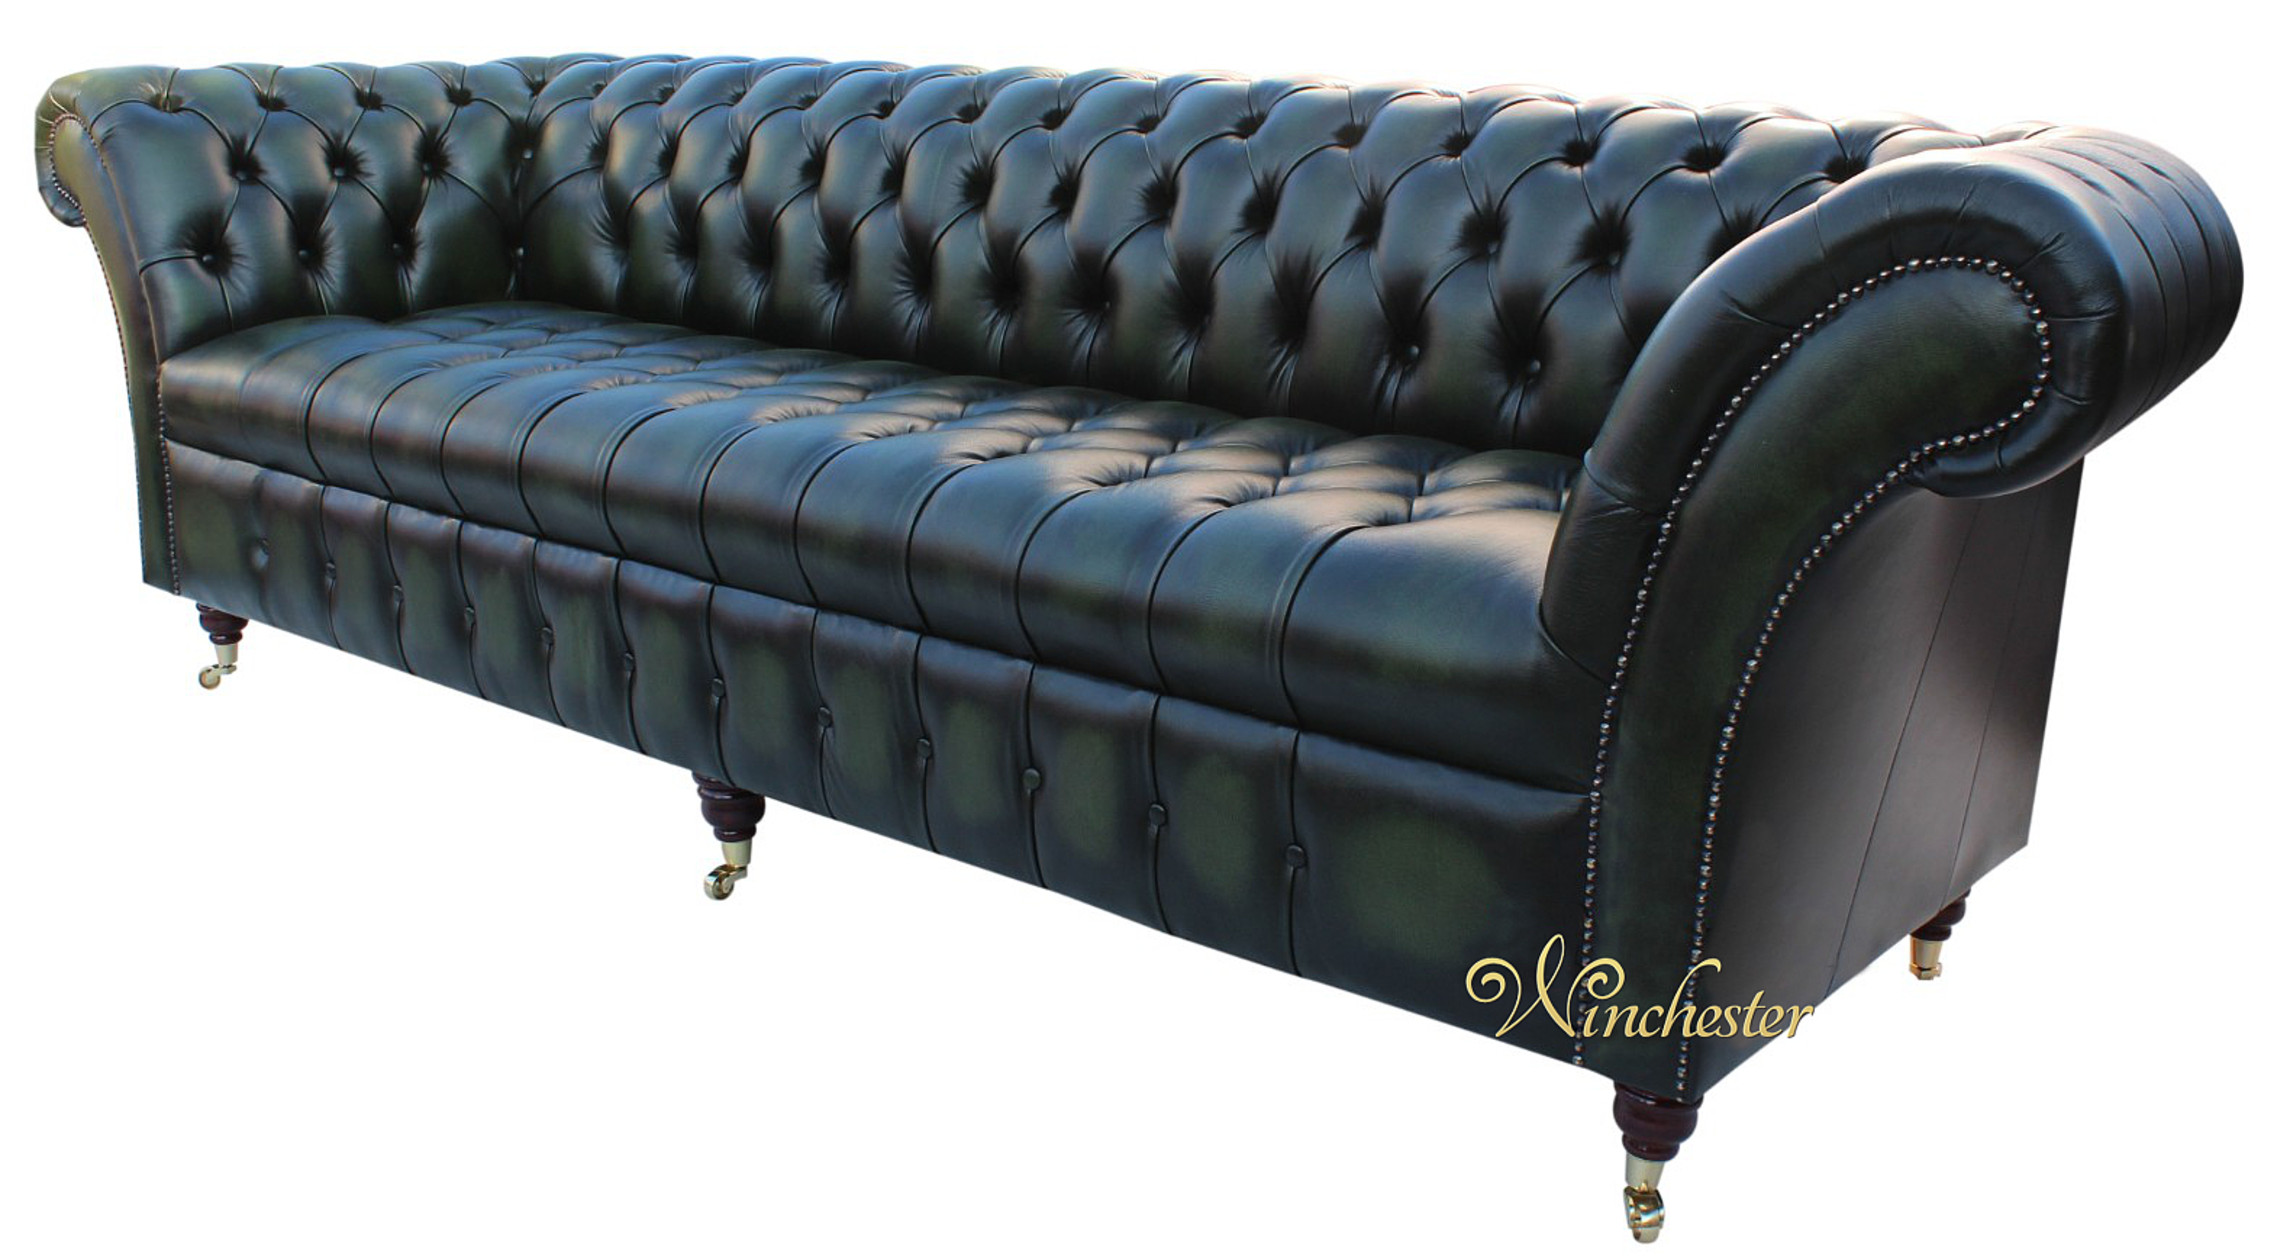 Chesterfield balmoral 4 seater sofa buttoned seat settee for Leather sofa 7 seater